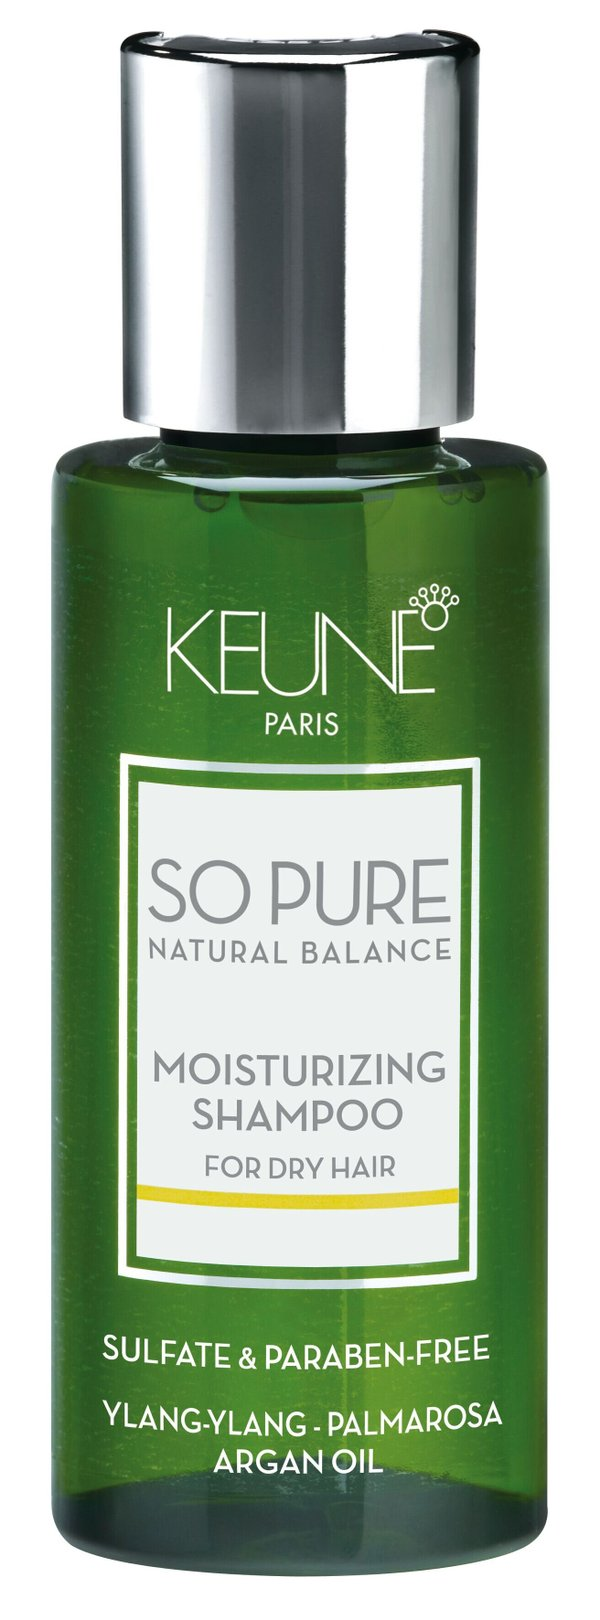 Foto do produto SO PURE MOISTURIZING SHAMPOO